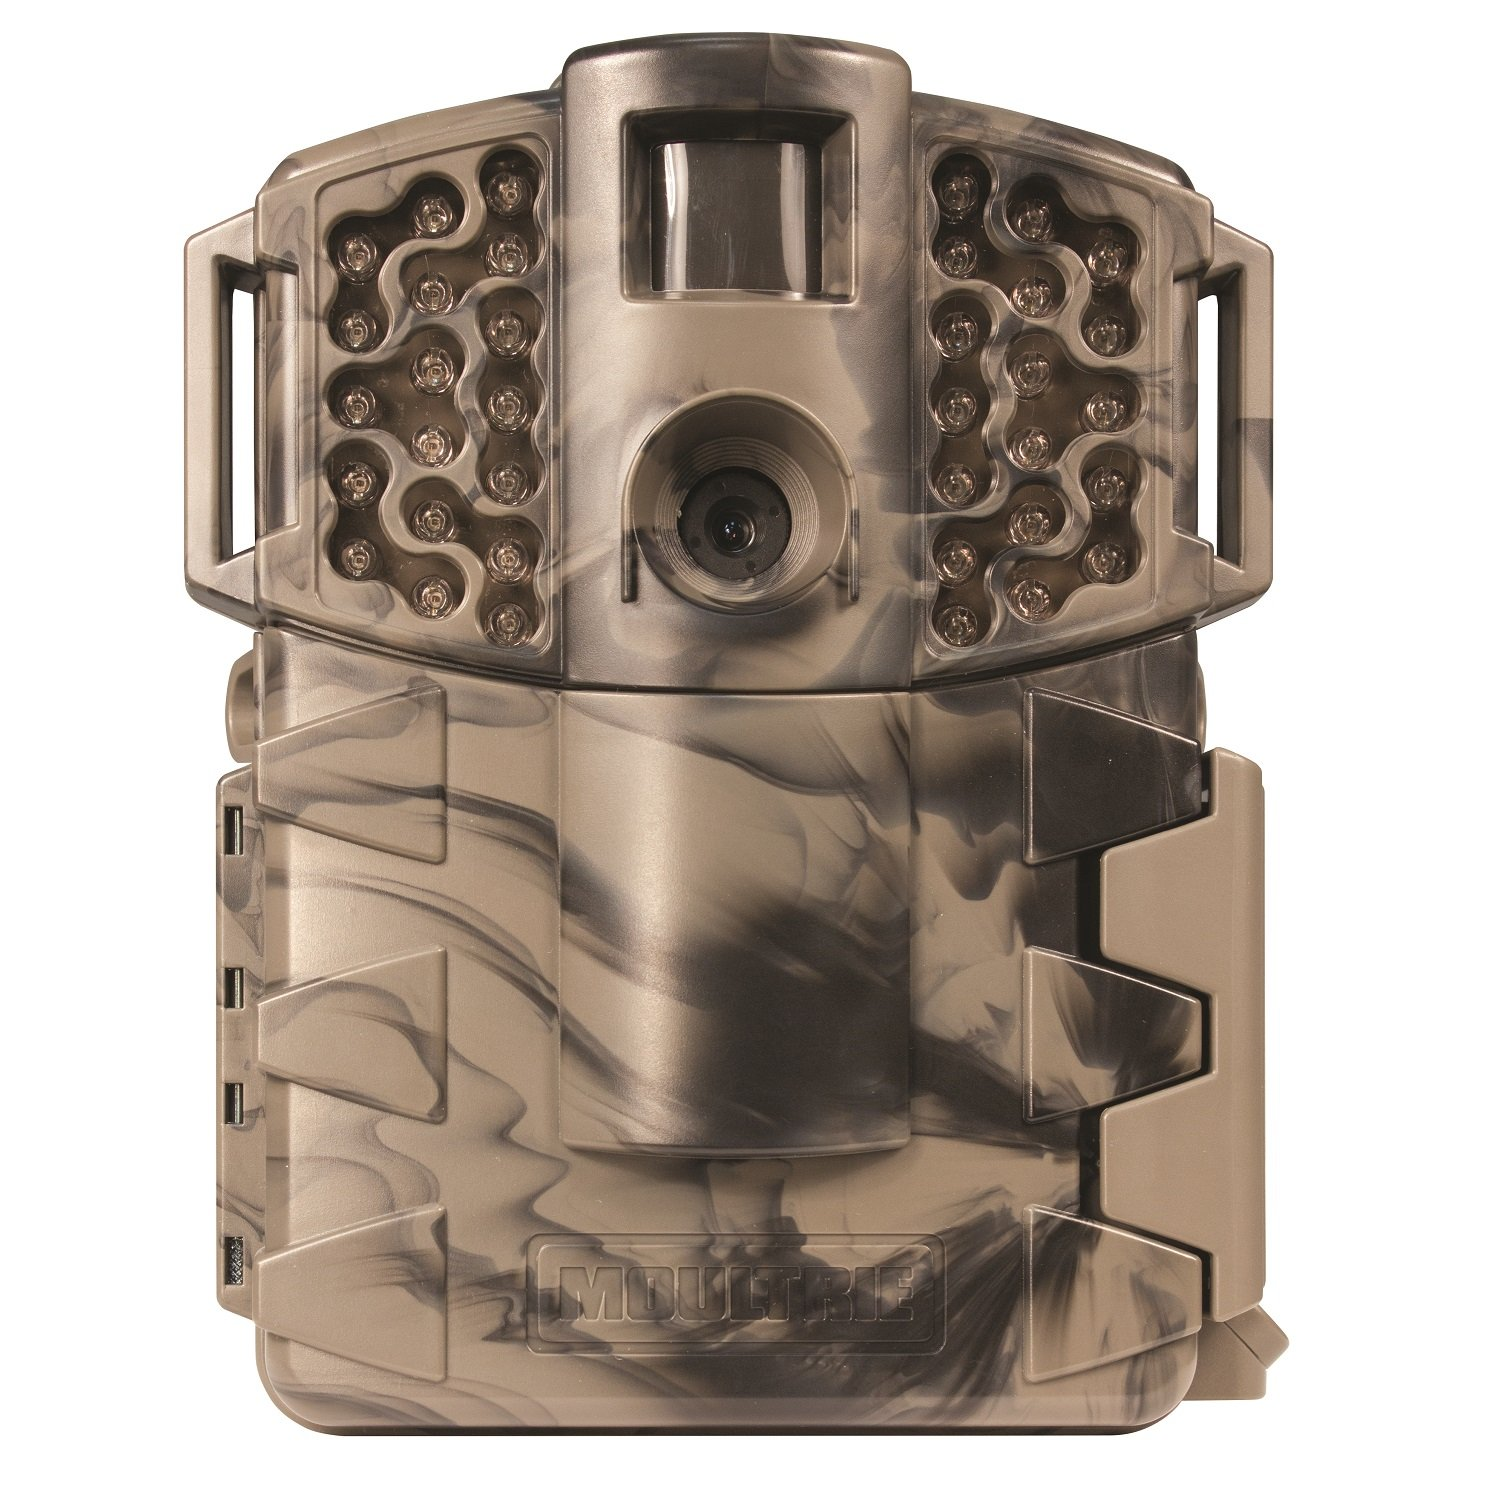 Best Trail Camera 2020.Top 10 Best Scouting Trail Cameras Buying Guide 2019 2020 On